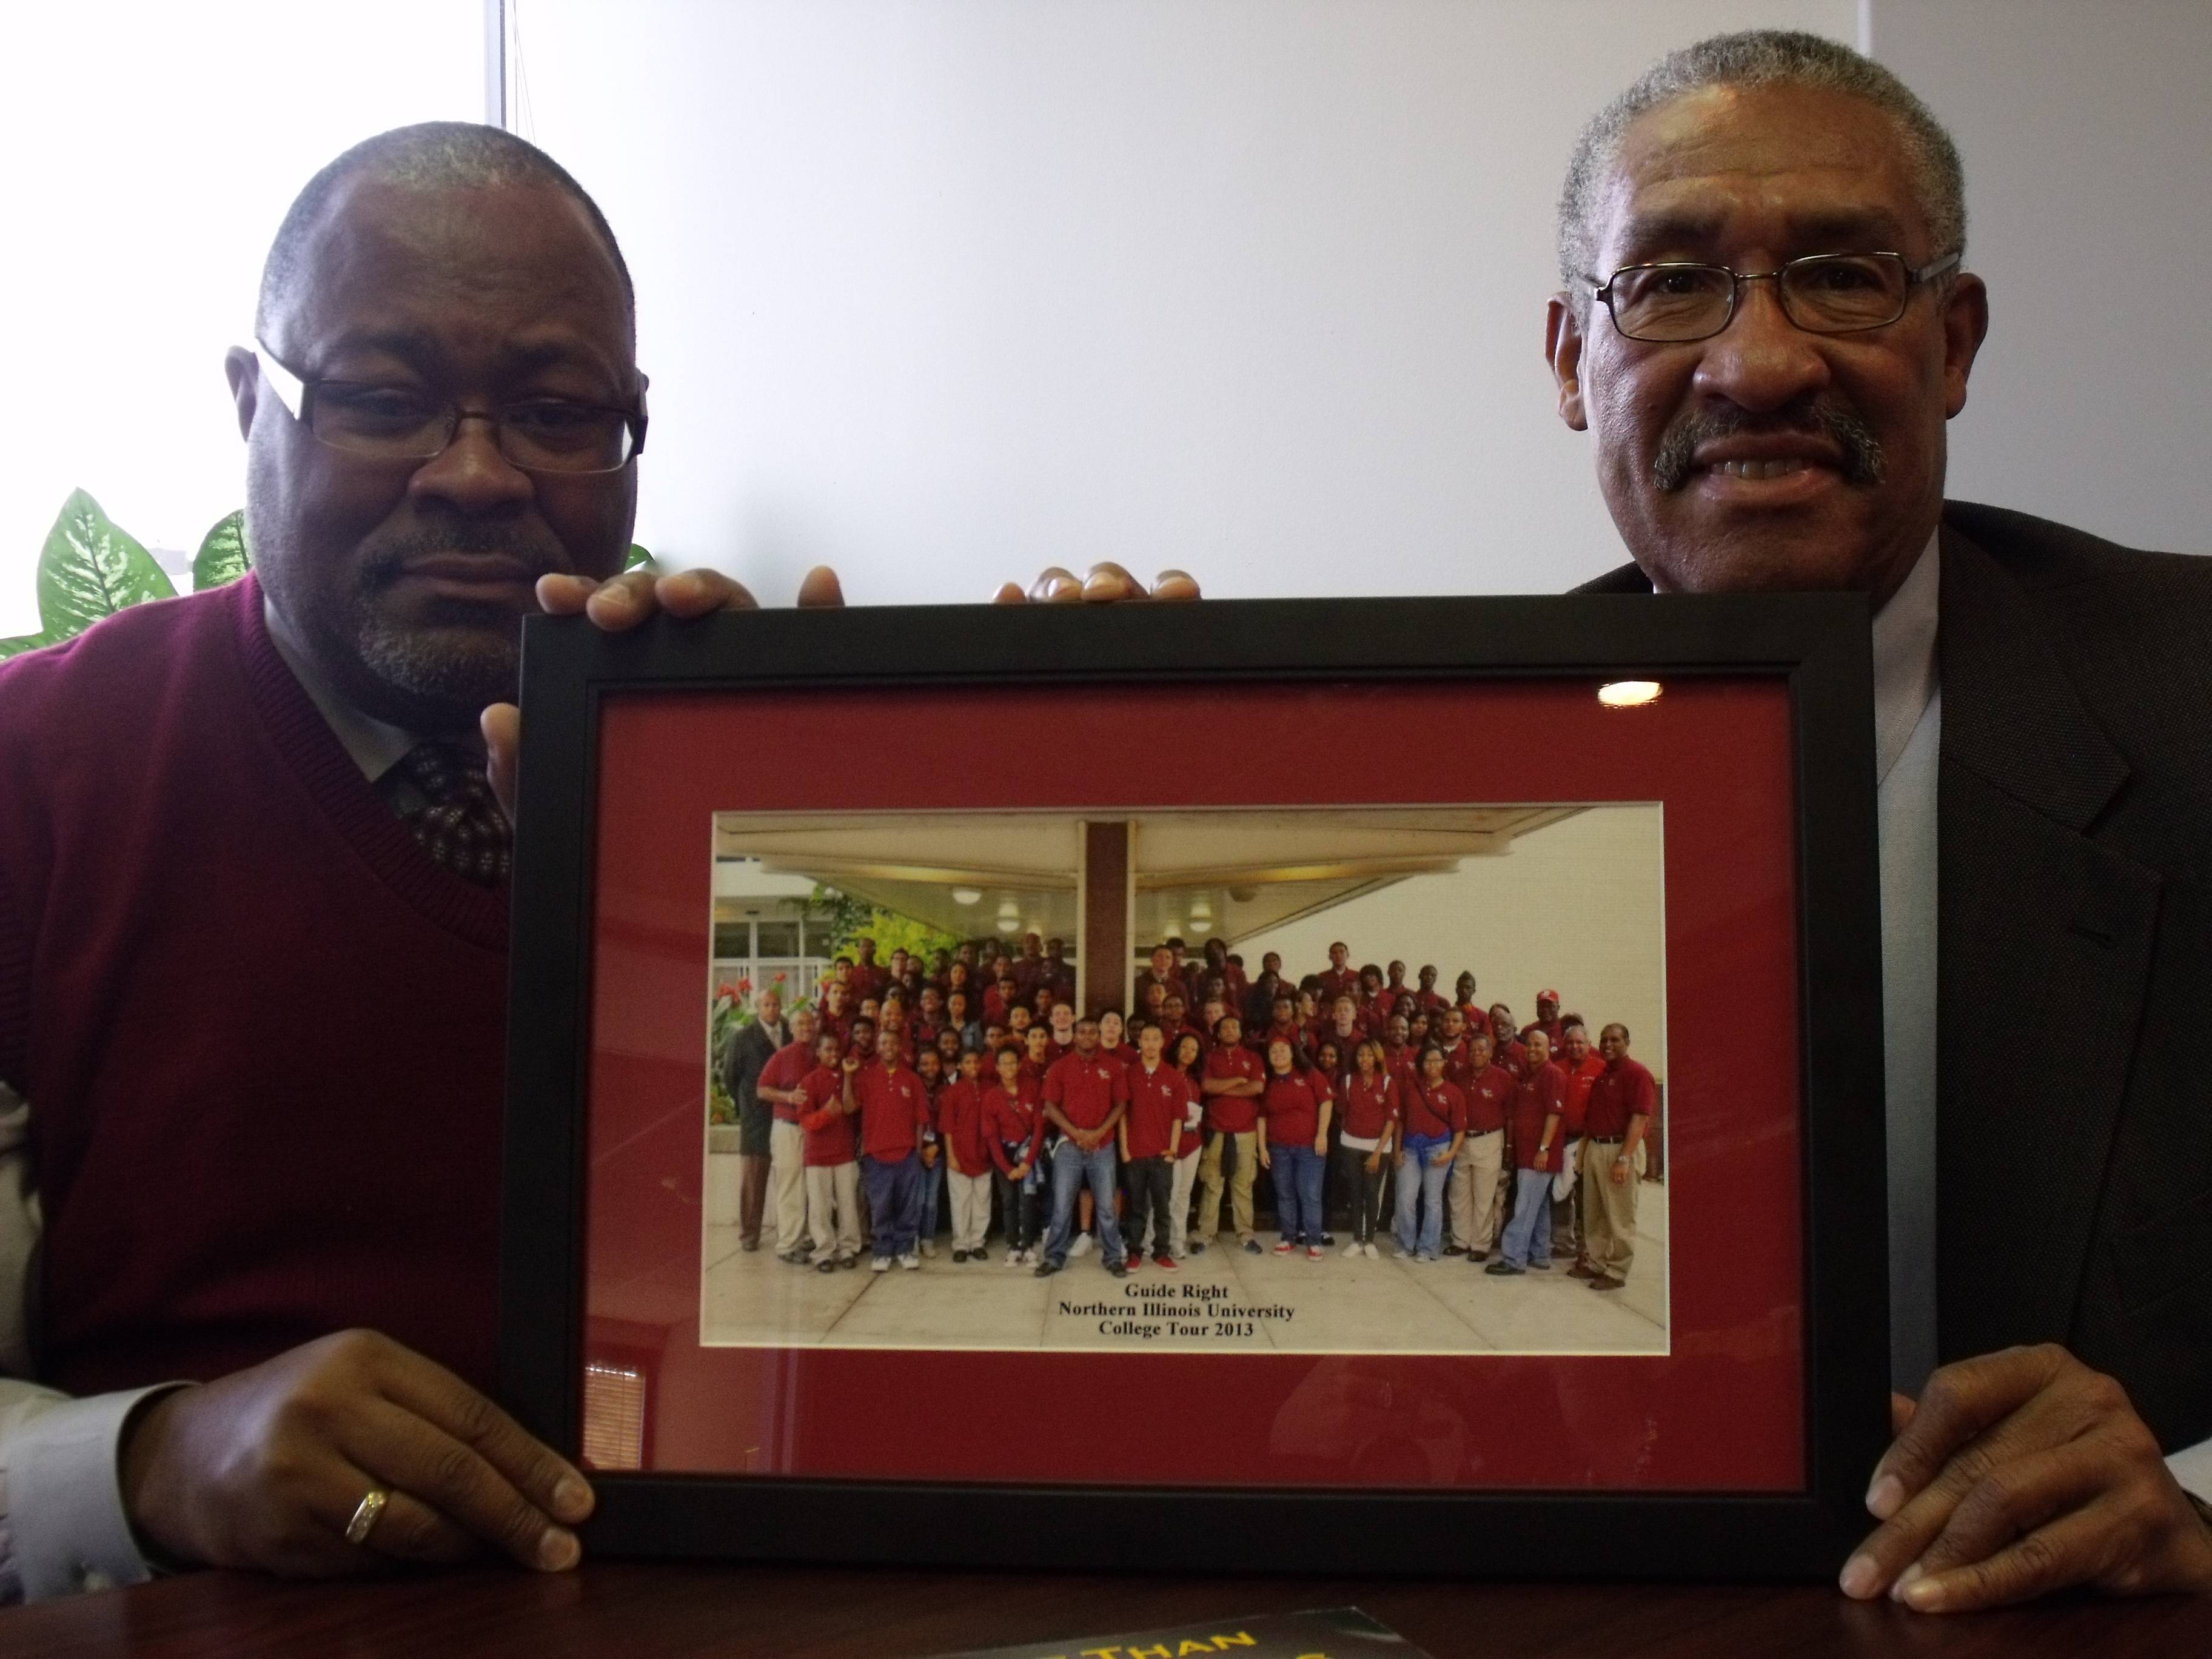 Diamond Youth Foundation Board Members James Jackson (left) and Robert Engram proudly display a photo of the 80 students who attended a recent college visit to Northern Illinois University.  The students participate in the Diamond Youth Foundation at their respective high schools.